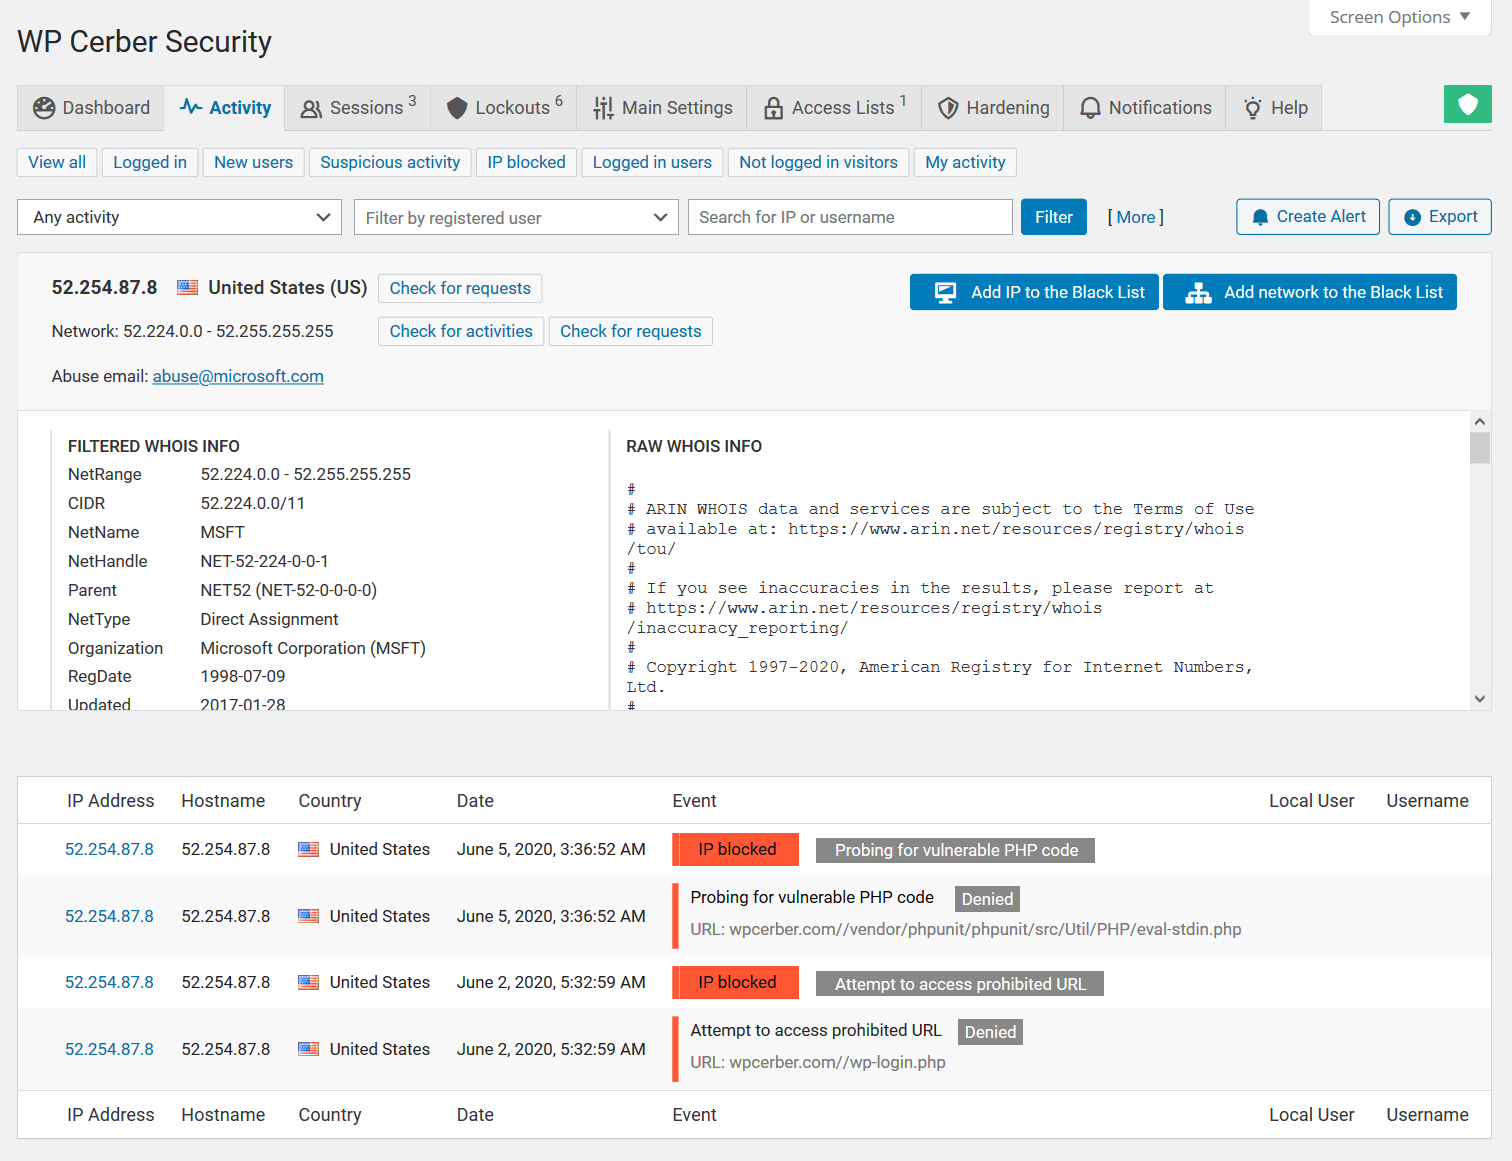 Inspecting the WP Cerber's Activity log in the WordPress dashboard